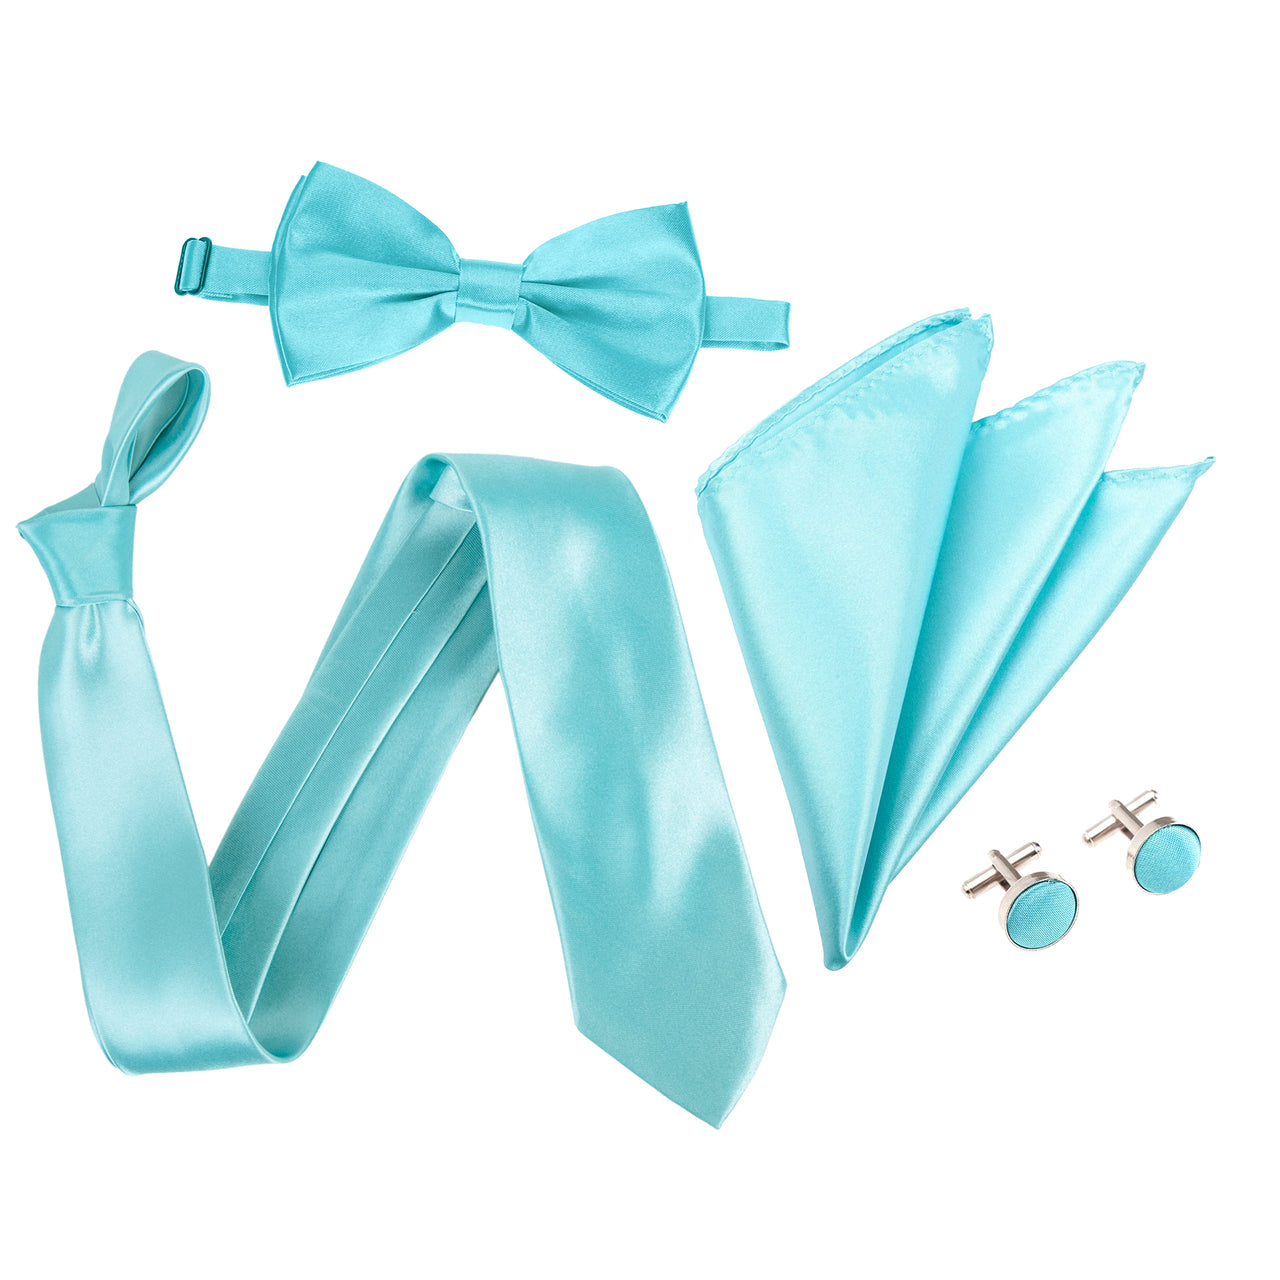 "4pc Tie Set: Wide 3"" Tie, Bow Tie, Handkerchief & Cufflinks - Turquoise"